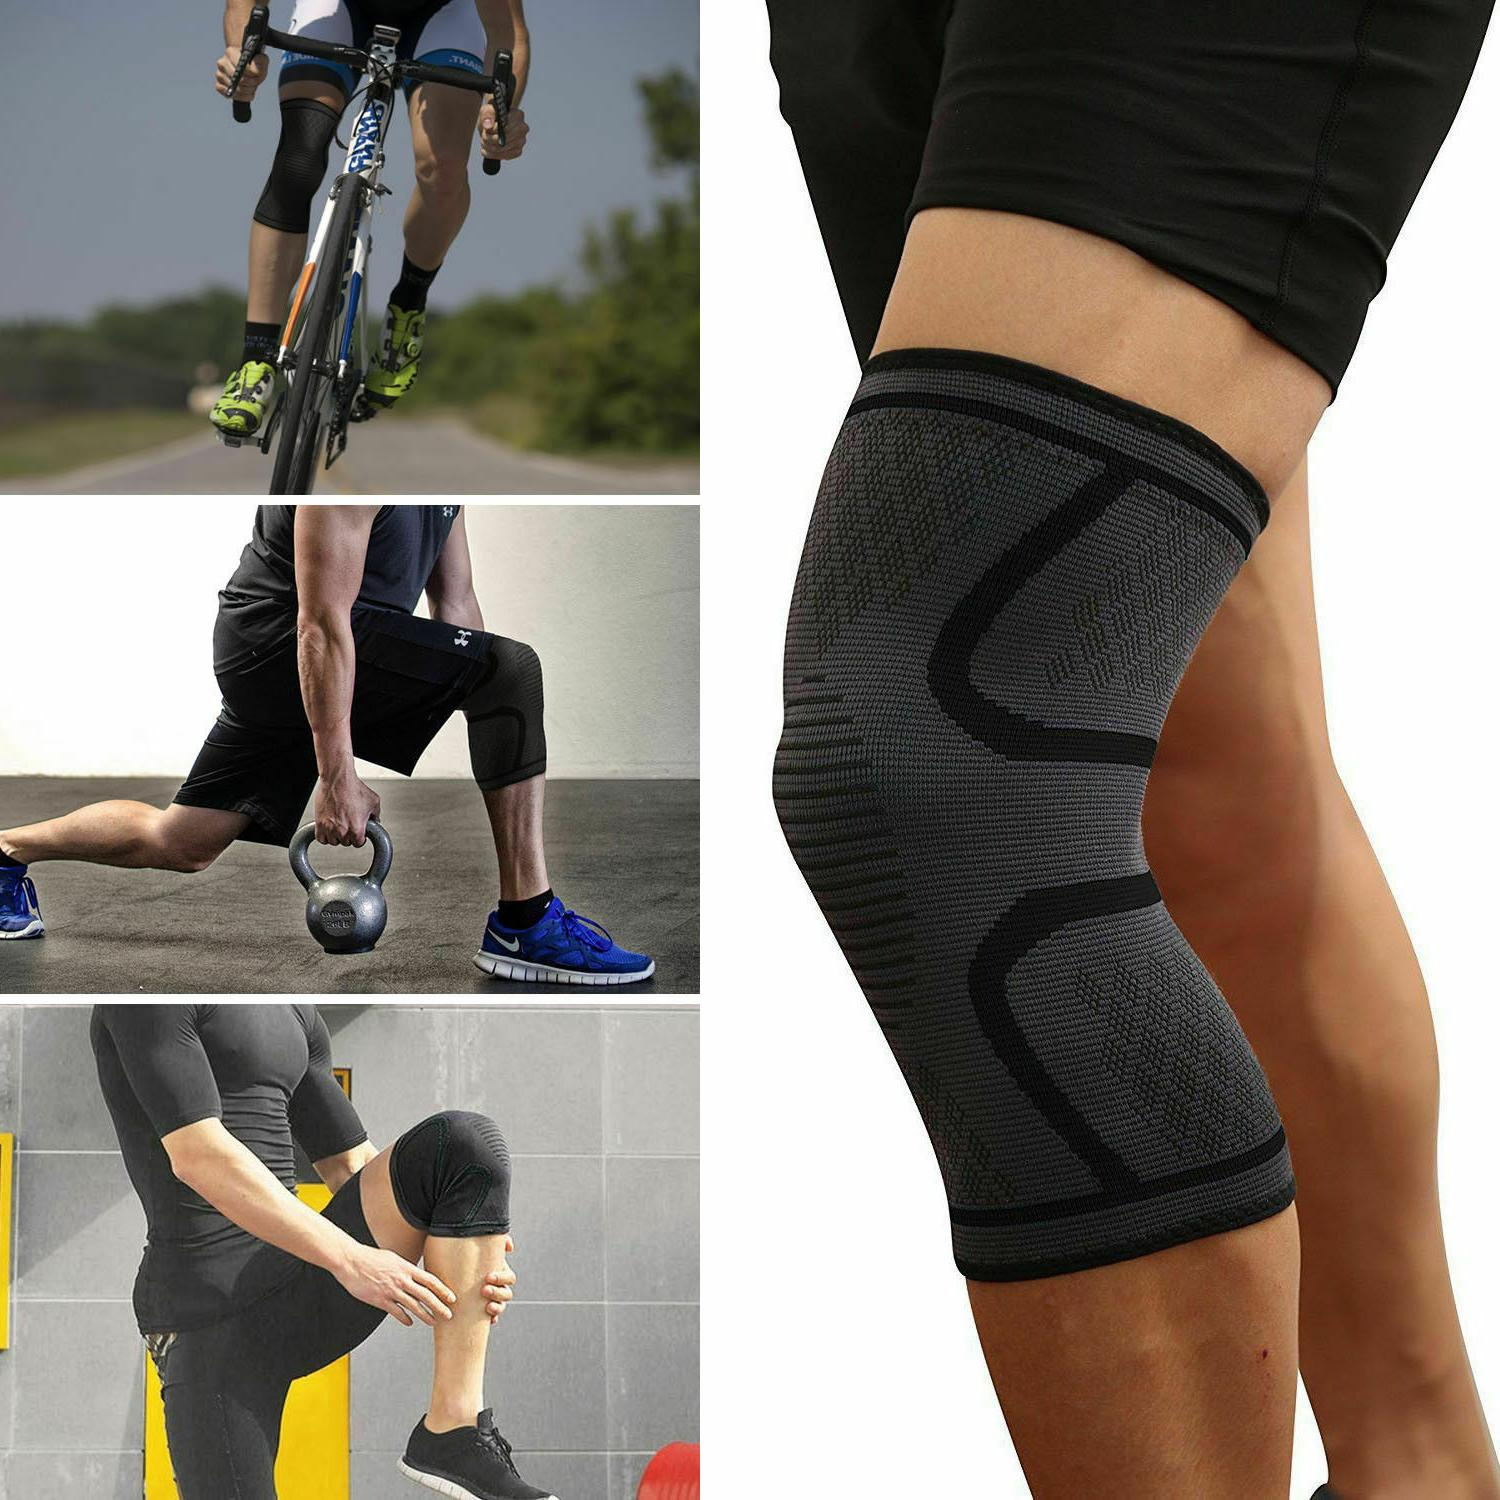 2pcs Brace Support For Sport Joint Pain Arthritis Relief